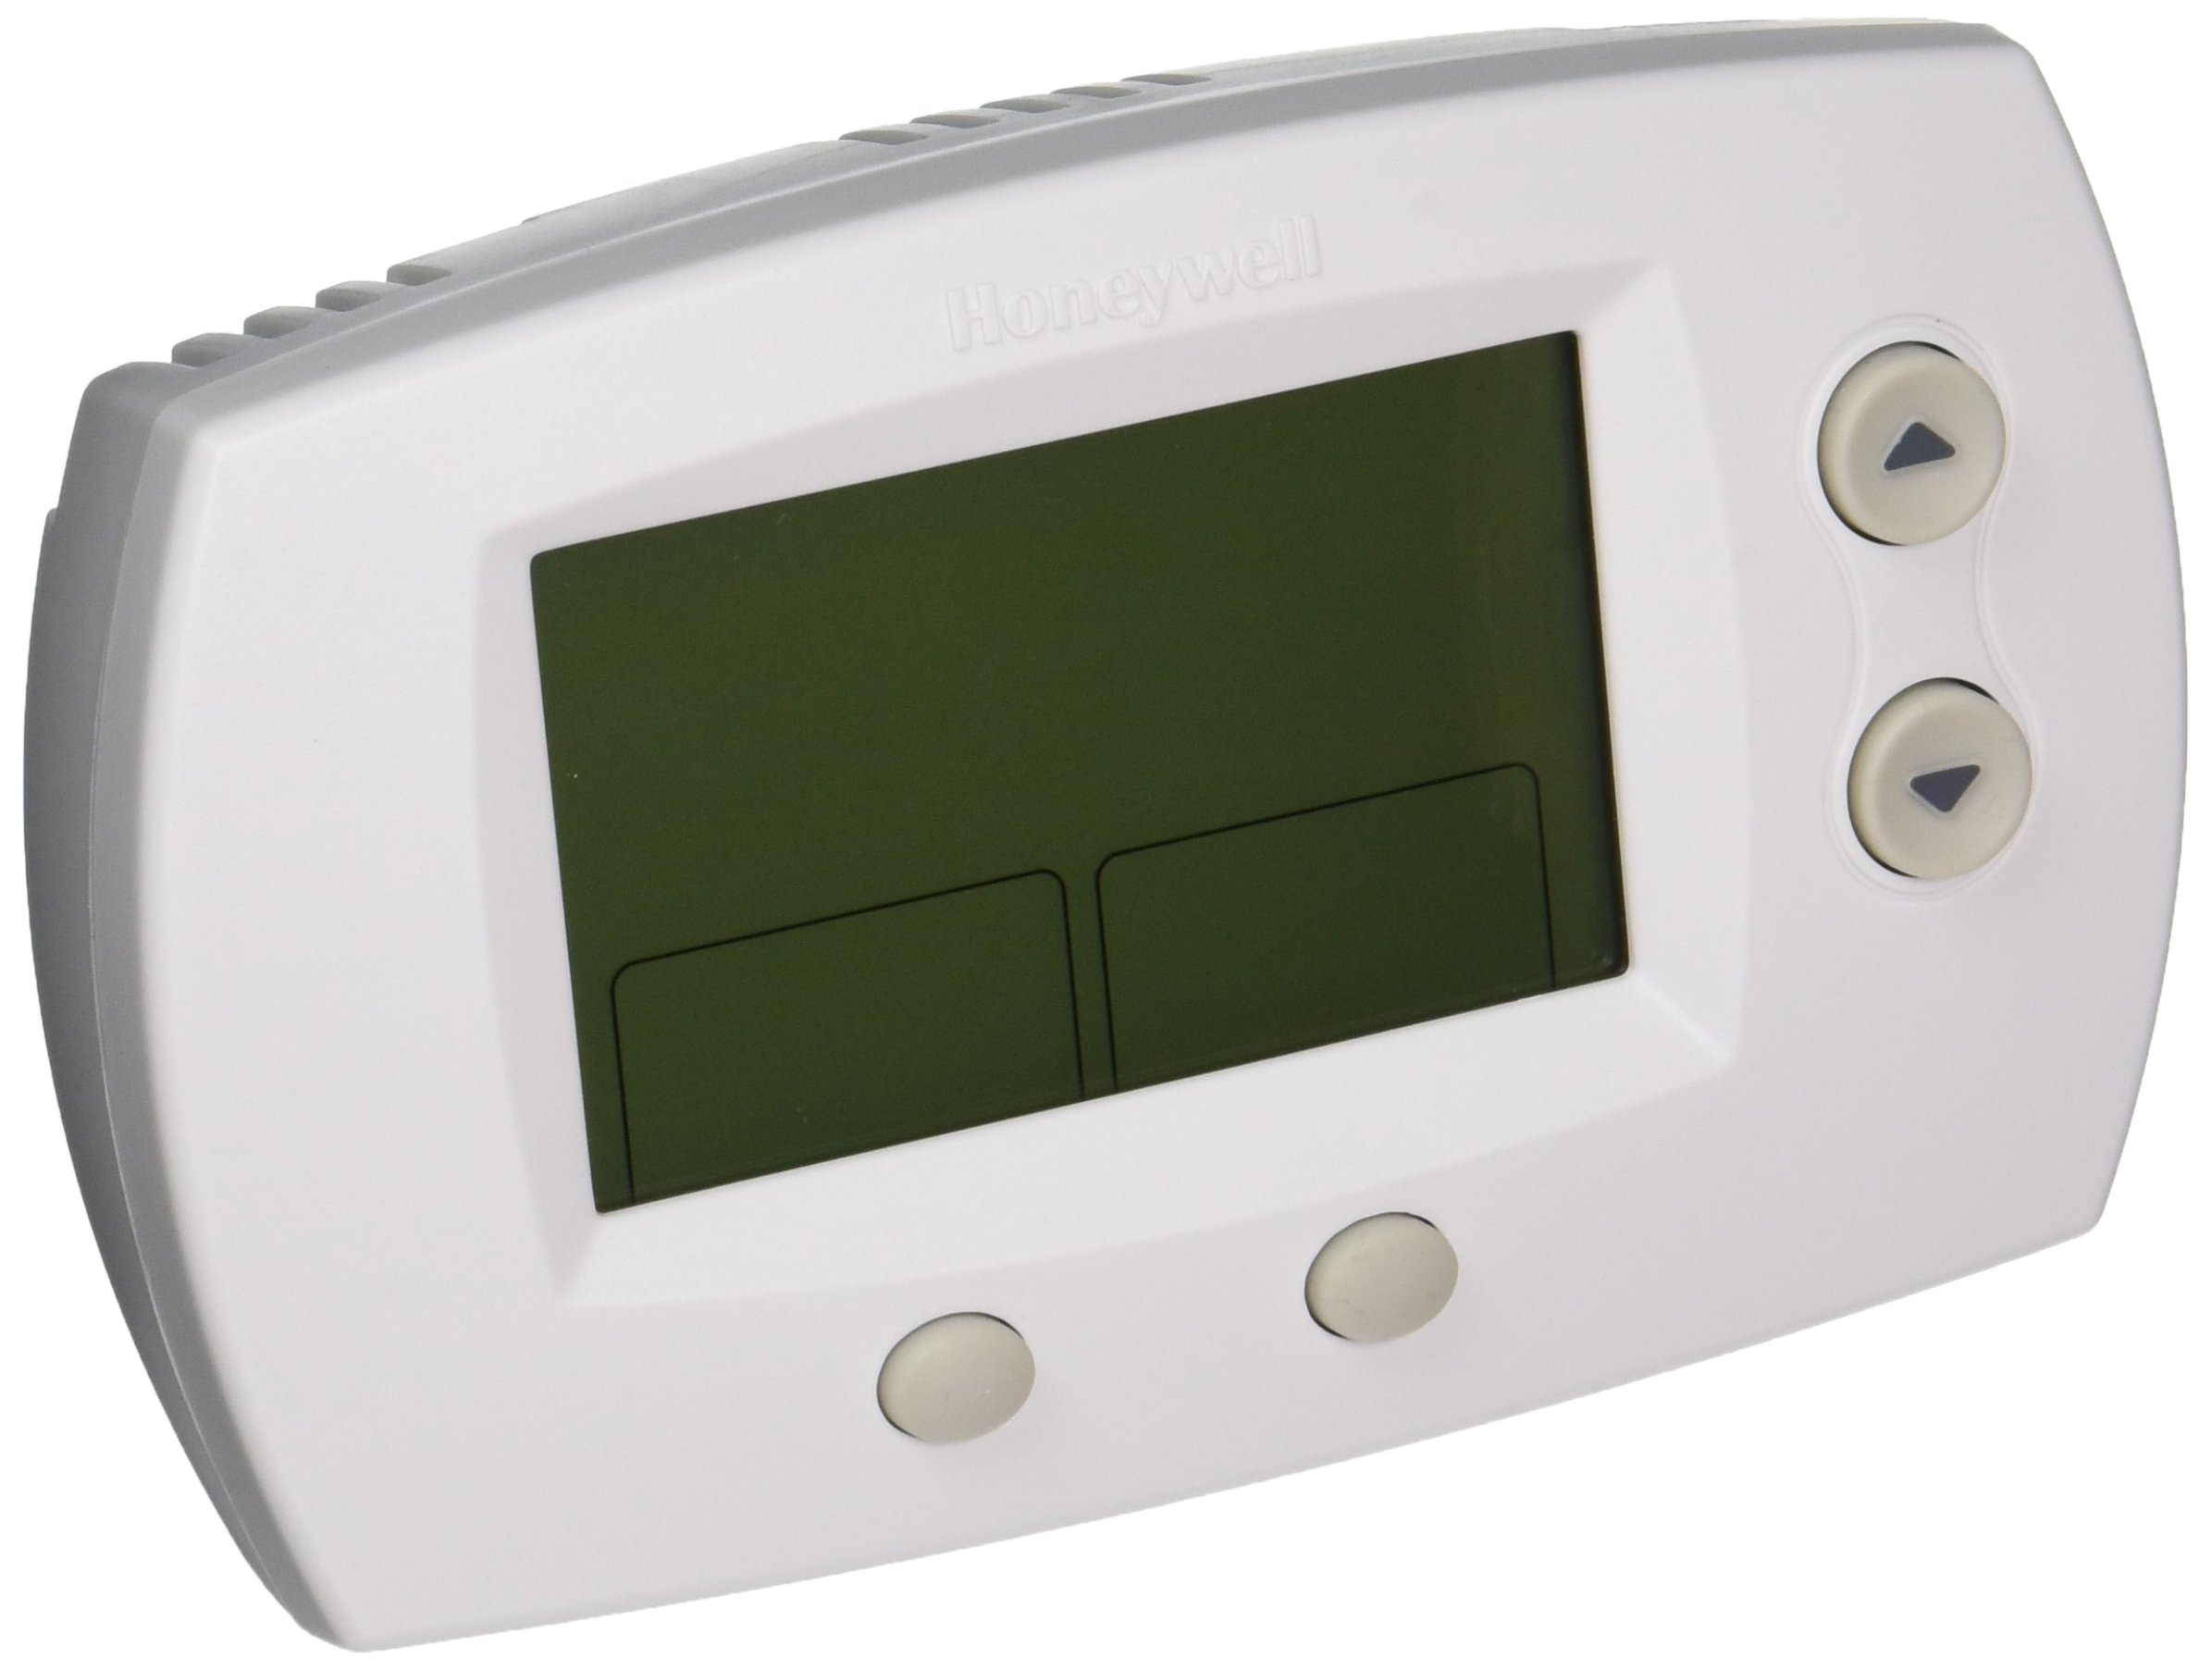 Honeywell Digital Thermostat Wiring Diagram Th5000 Detailed Th6220d Th5220d1029 Focuspro 5000 Non Programmable 2 Heat And Rth3100c